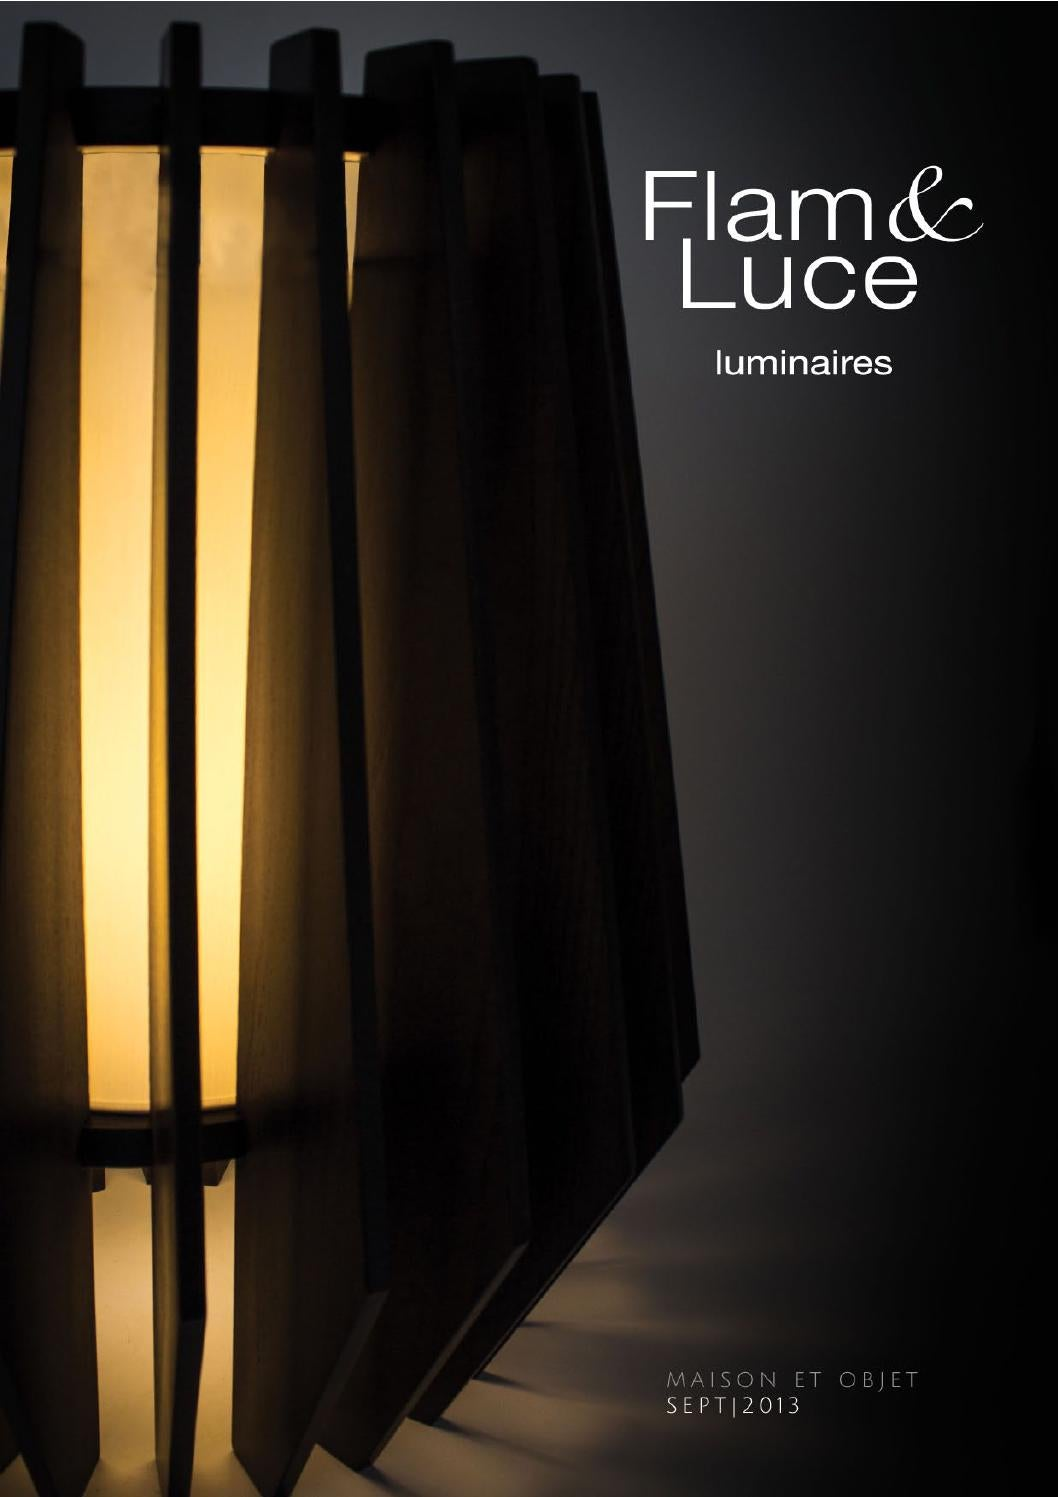 flam et luce cat 09 2013 by flam luce byclassy issuu. Black Bedroom Furniture Sets. Home Design Ideas